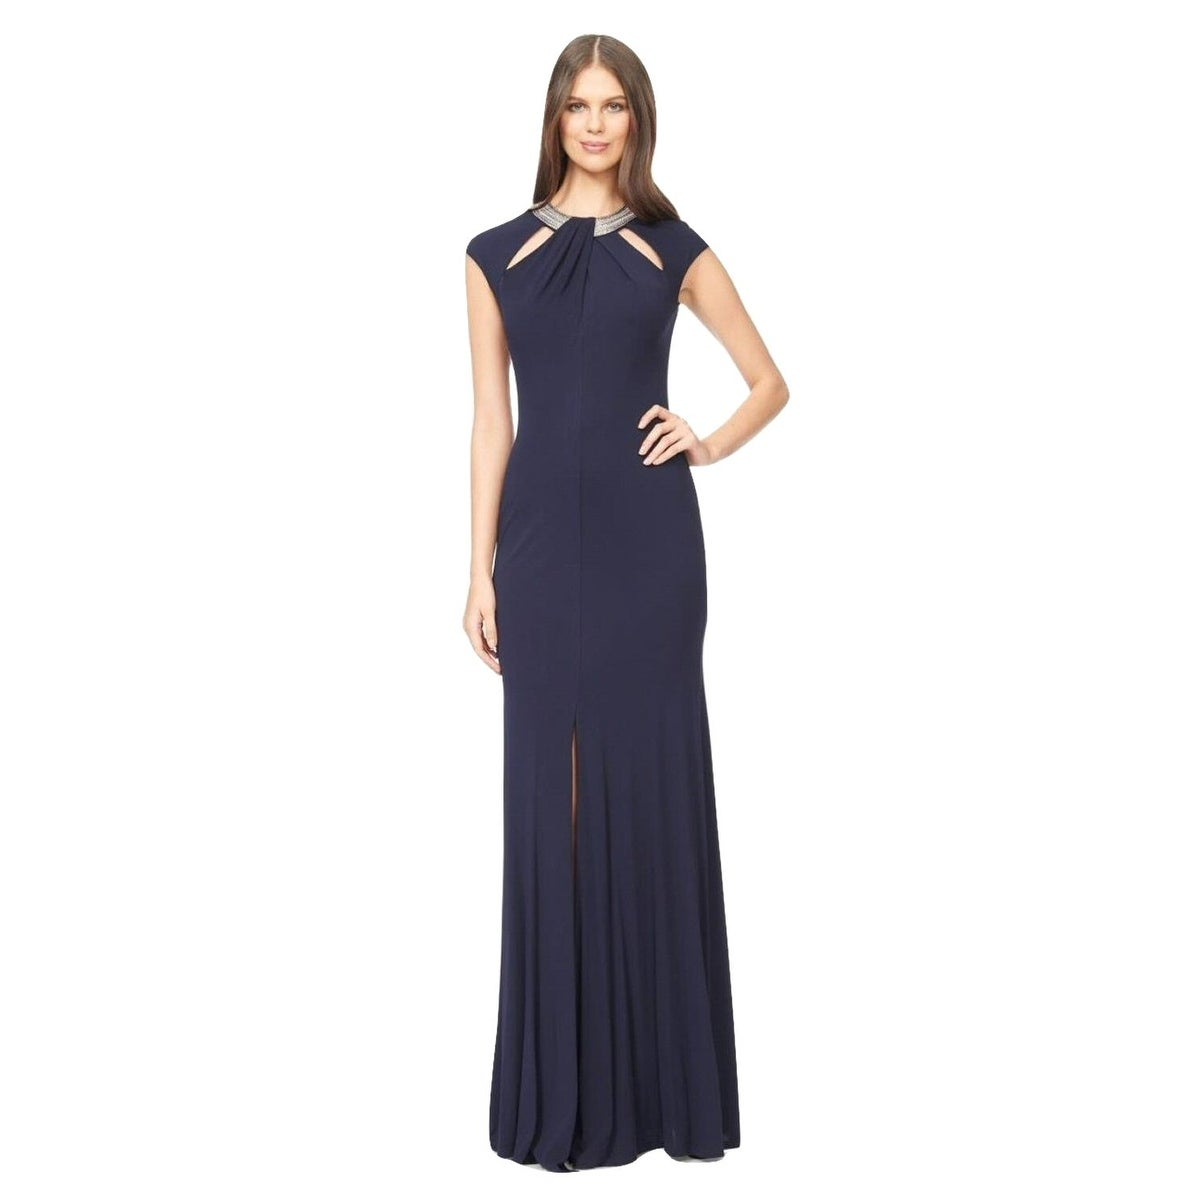 a1f120086f4 Shop David Meister Embellished Cutout Jersey Evening Gown Dress Navy - Free  Shipping Today - Overstock.com - 14826204